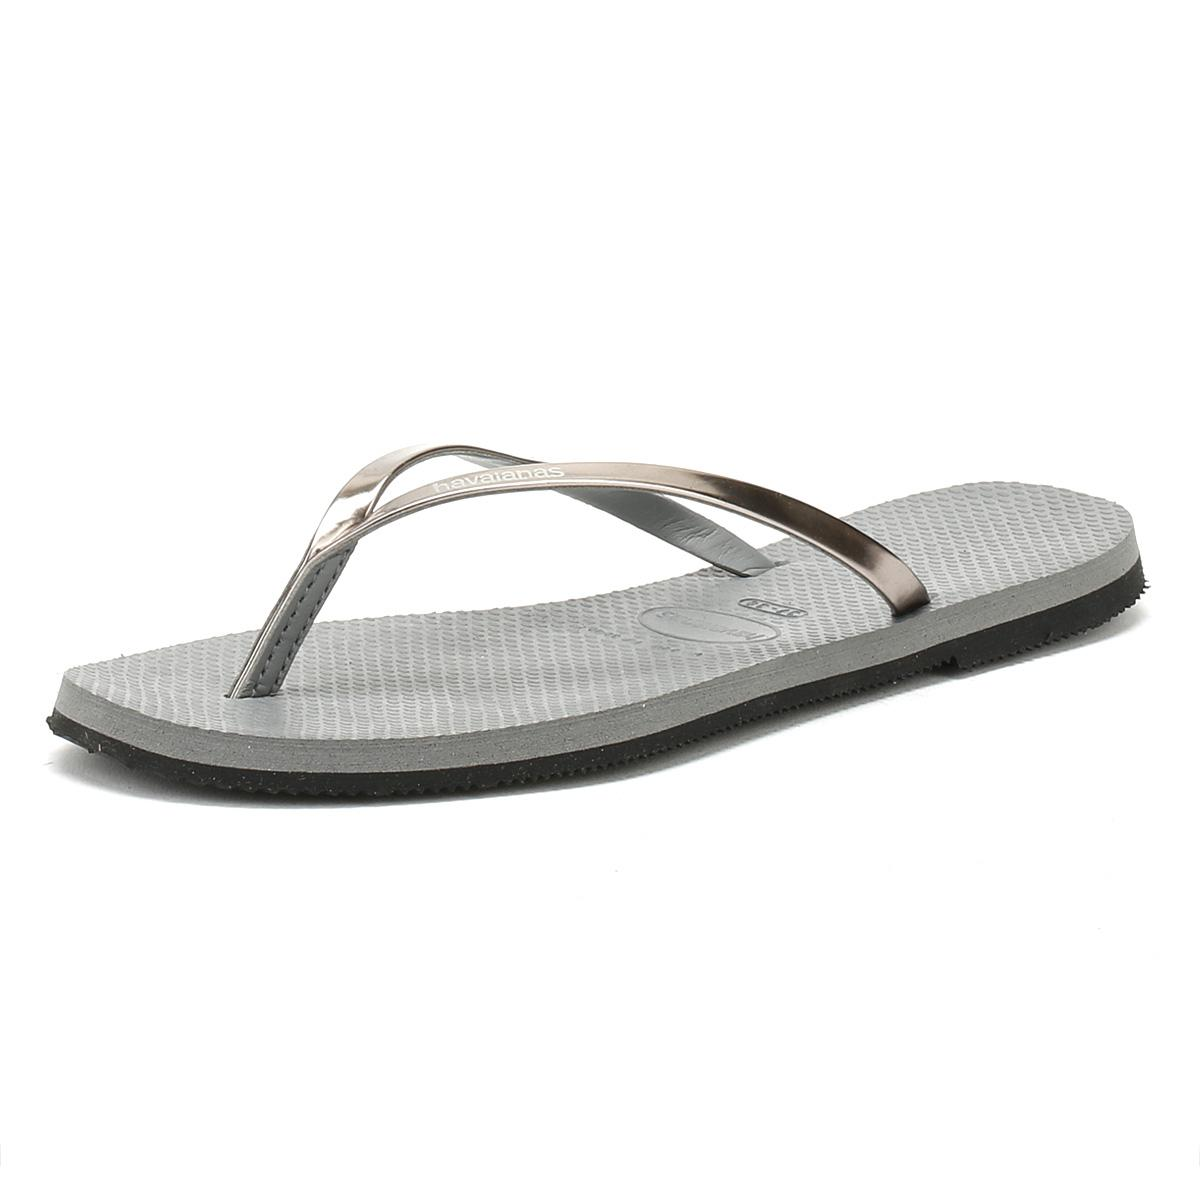 aa5cd795f357d7 Havaianas - Gray Womens Grey You Metallic Flip Flops - Lyst. View fullscreen